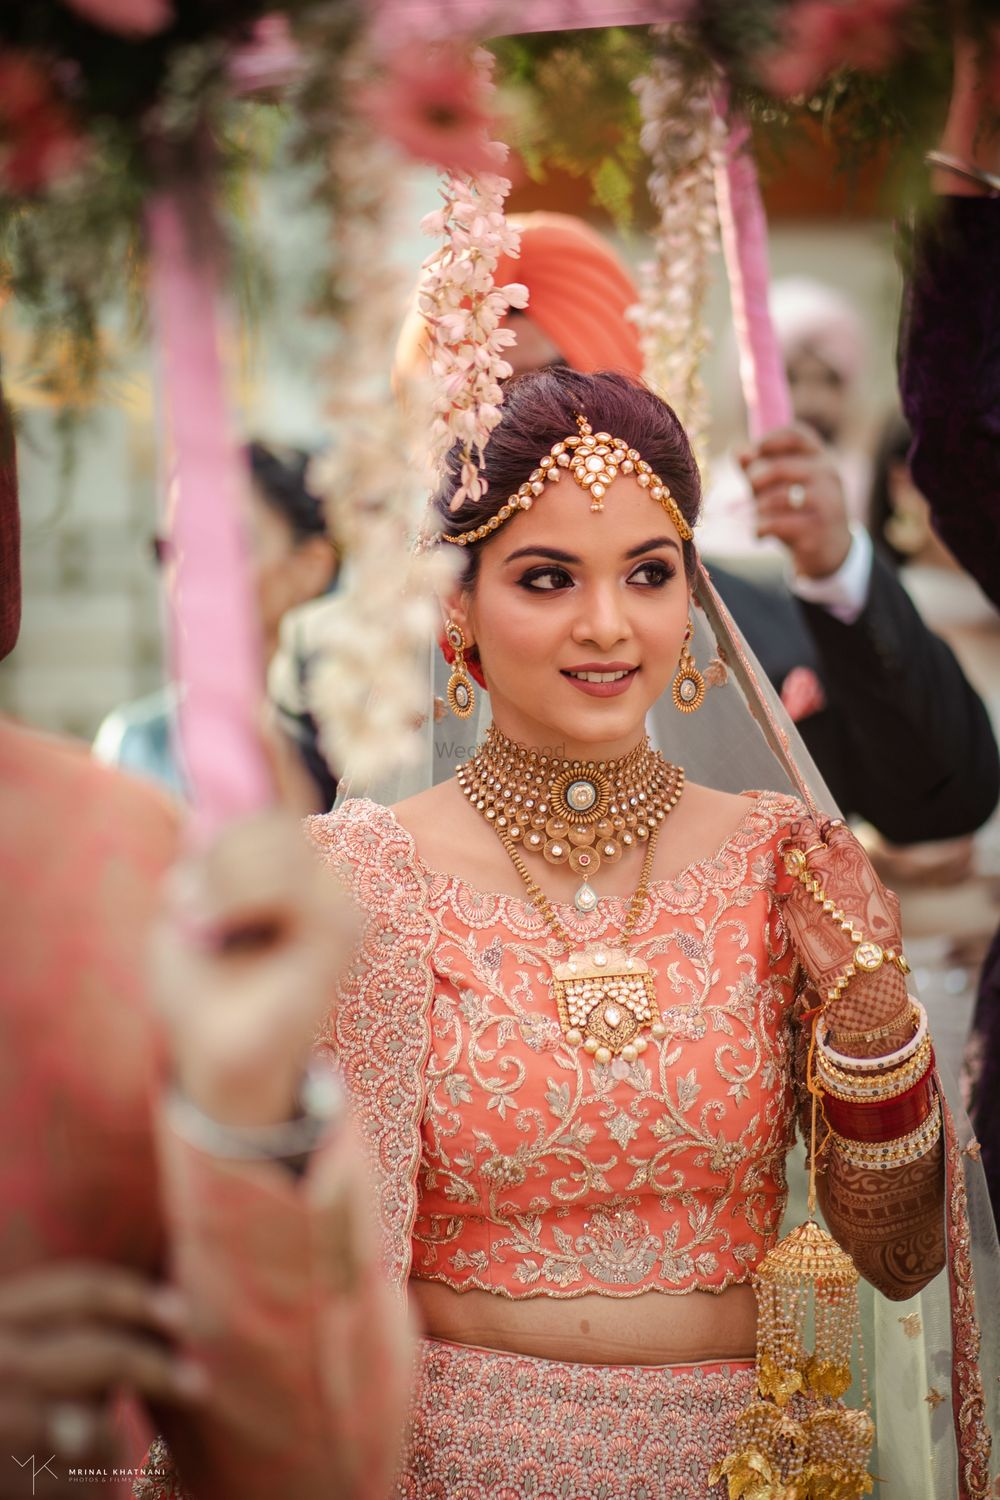 Photo of Candid shot of a bride during her entry.